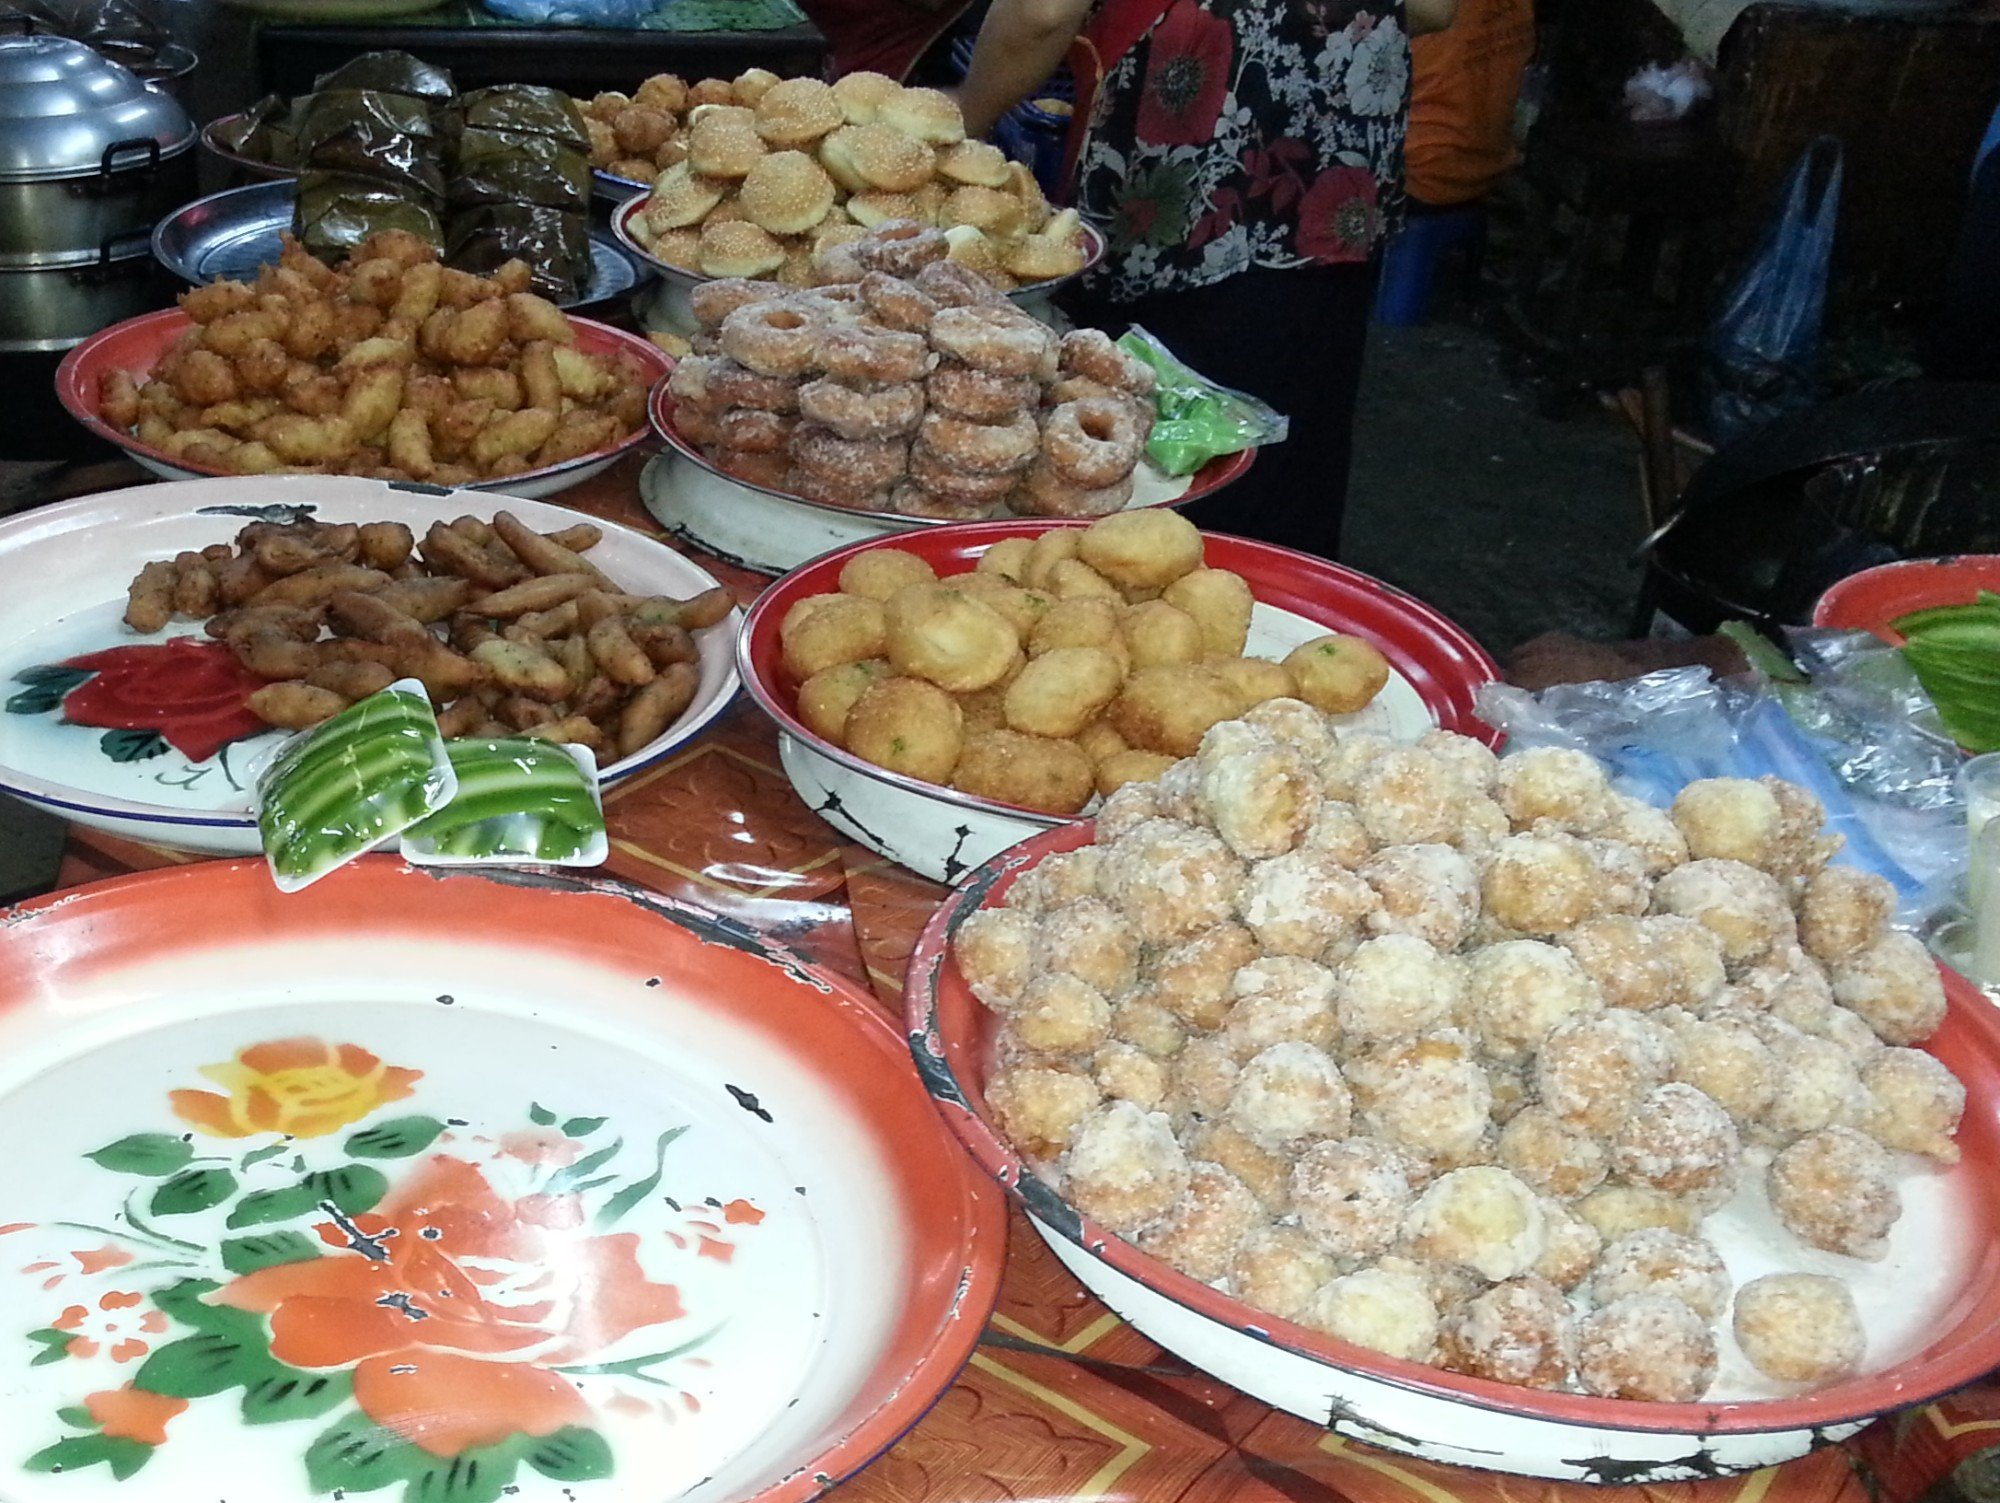 Fried breads at Phoukam Garden Agriculture Wet Market